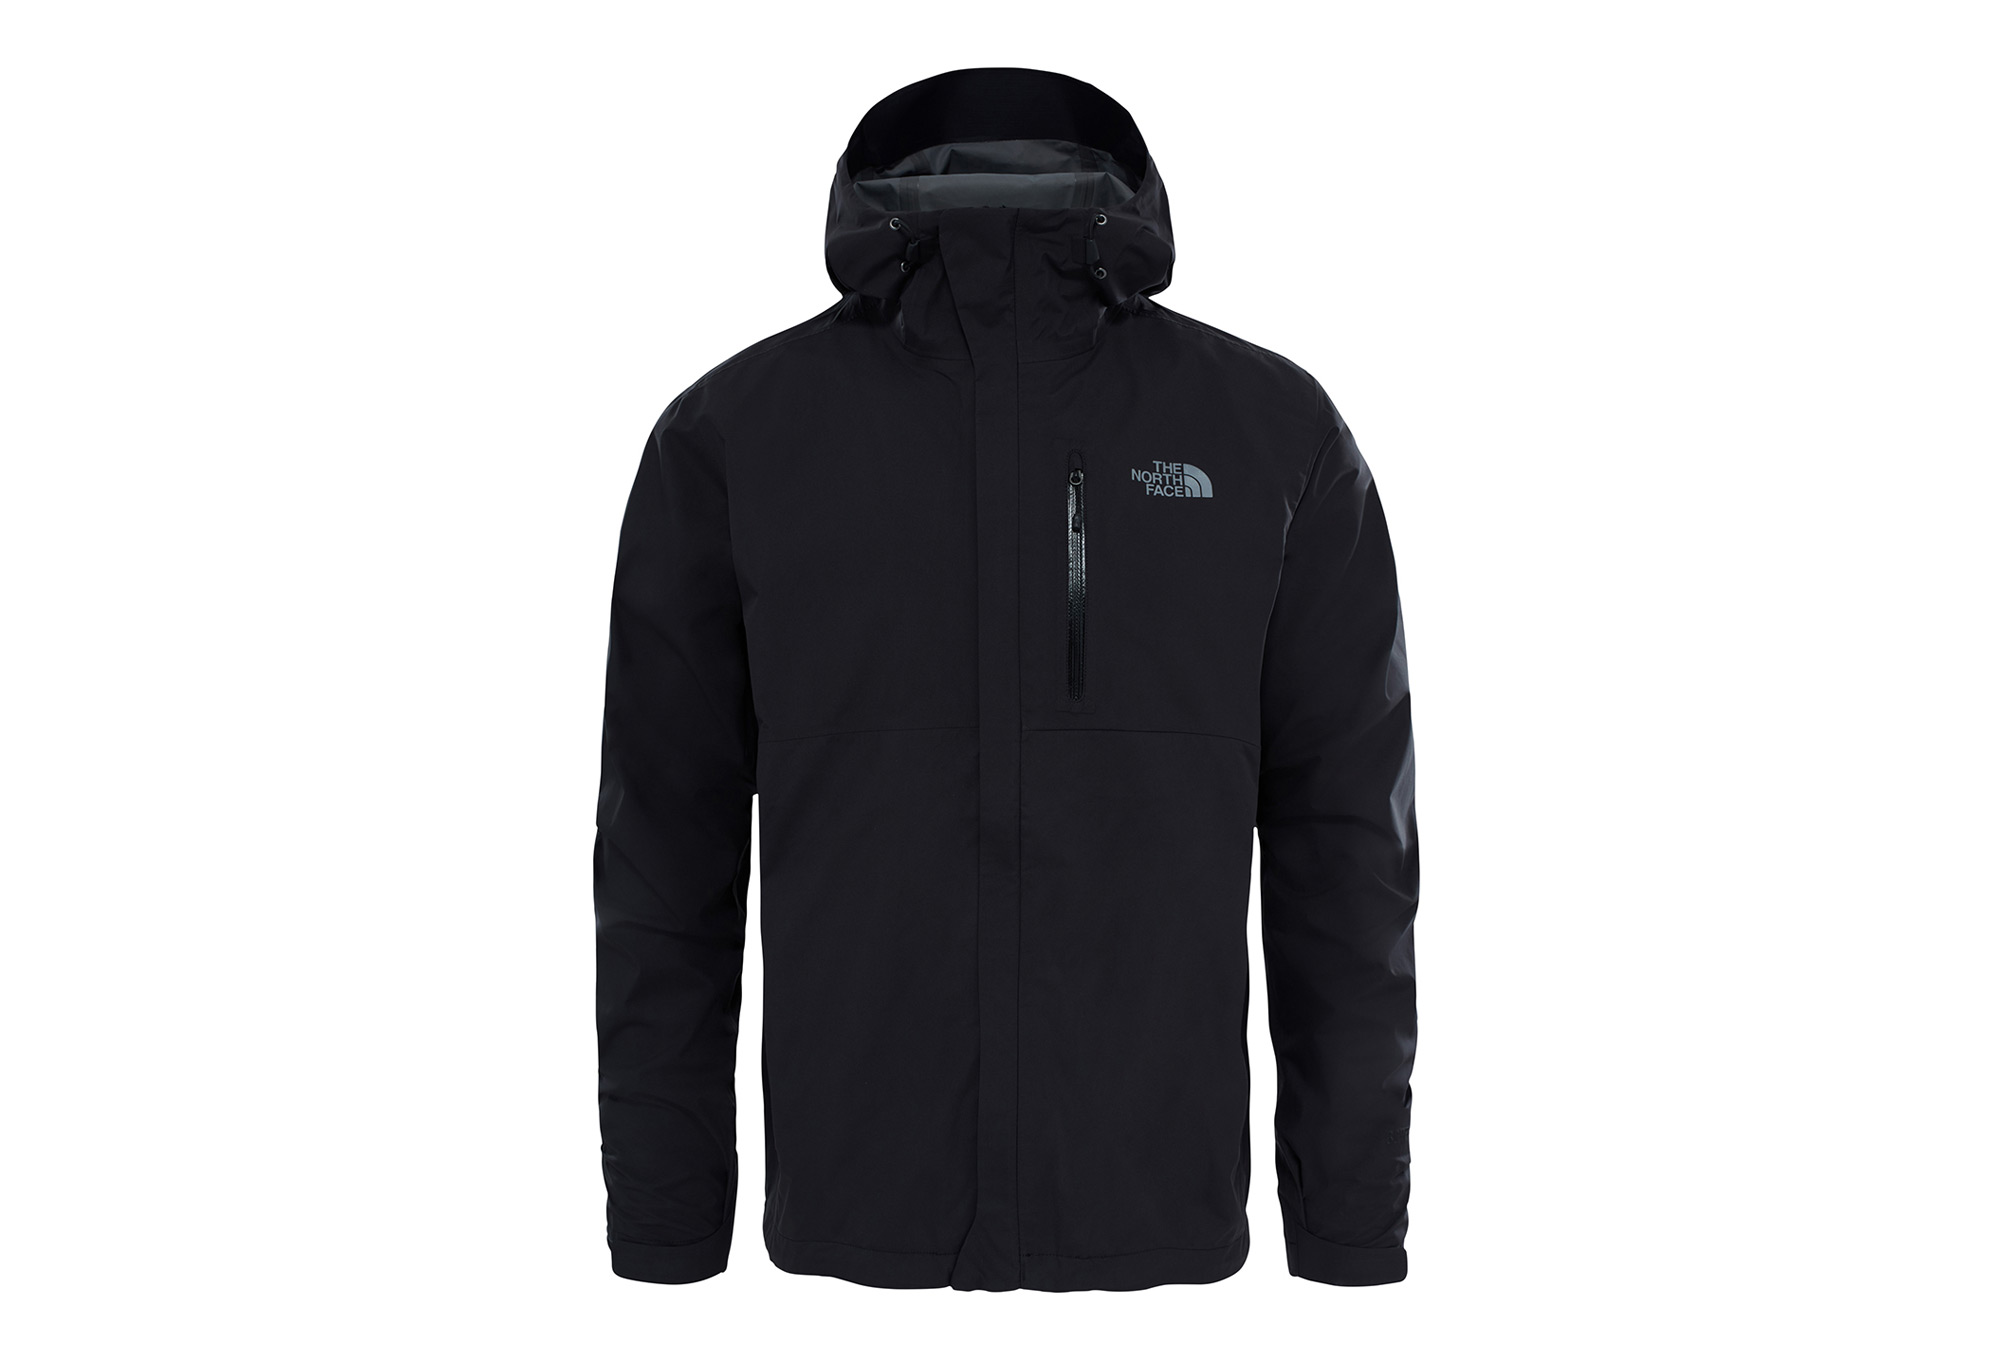 on sale 46b40 47284 The North Face Dryzzle Regenjacke Schwarz